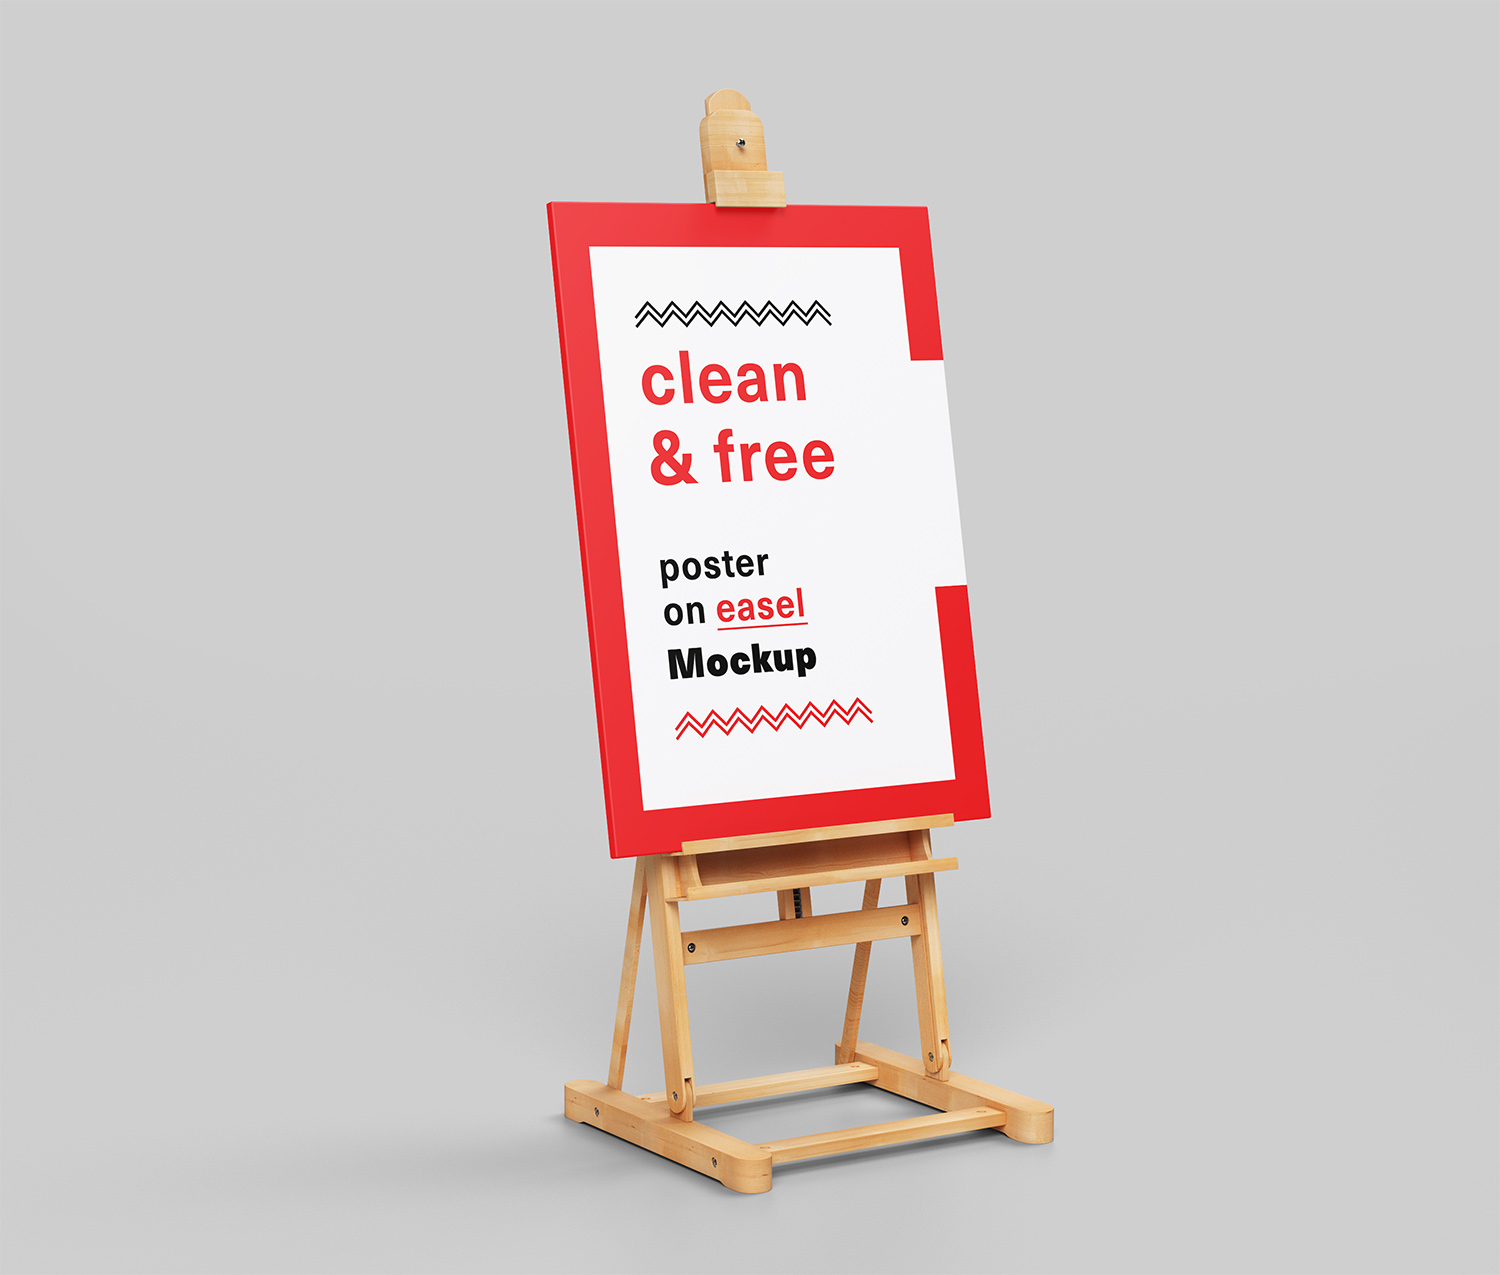 Canvas-Poster-on-Easel-Mockup-Free-01